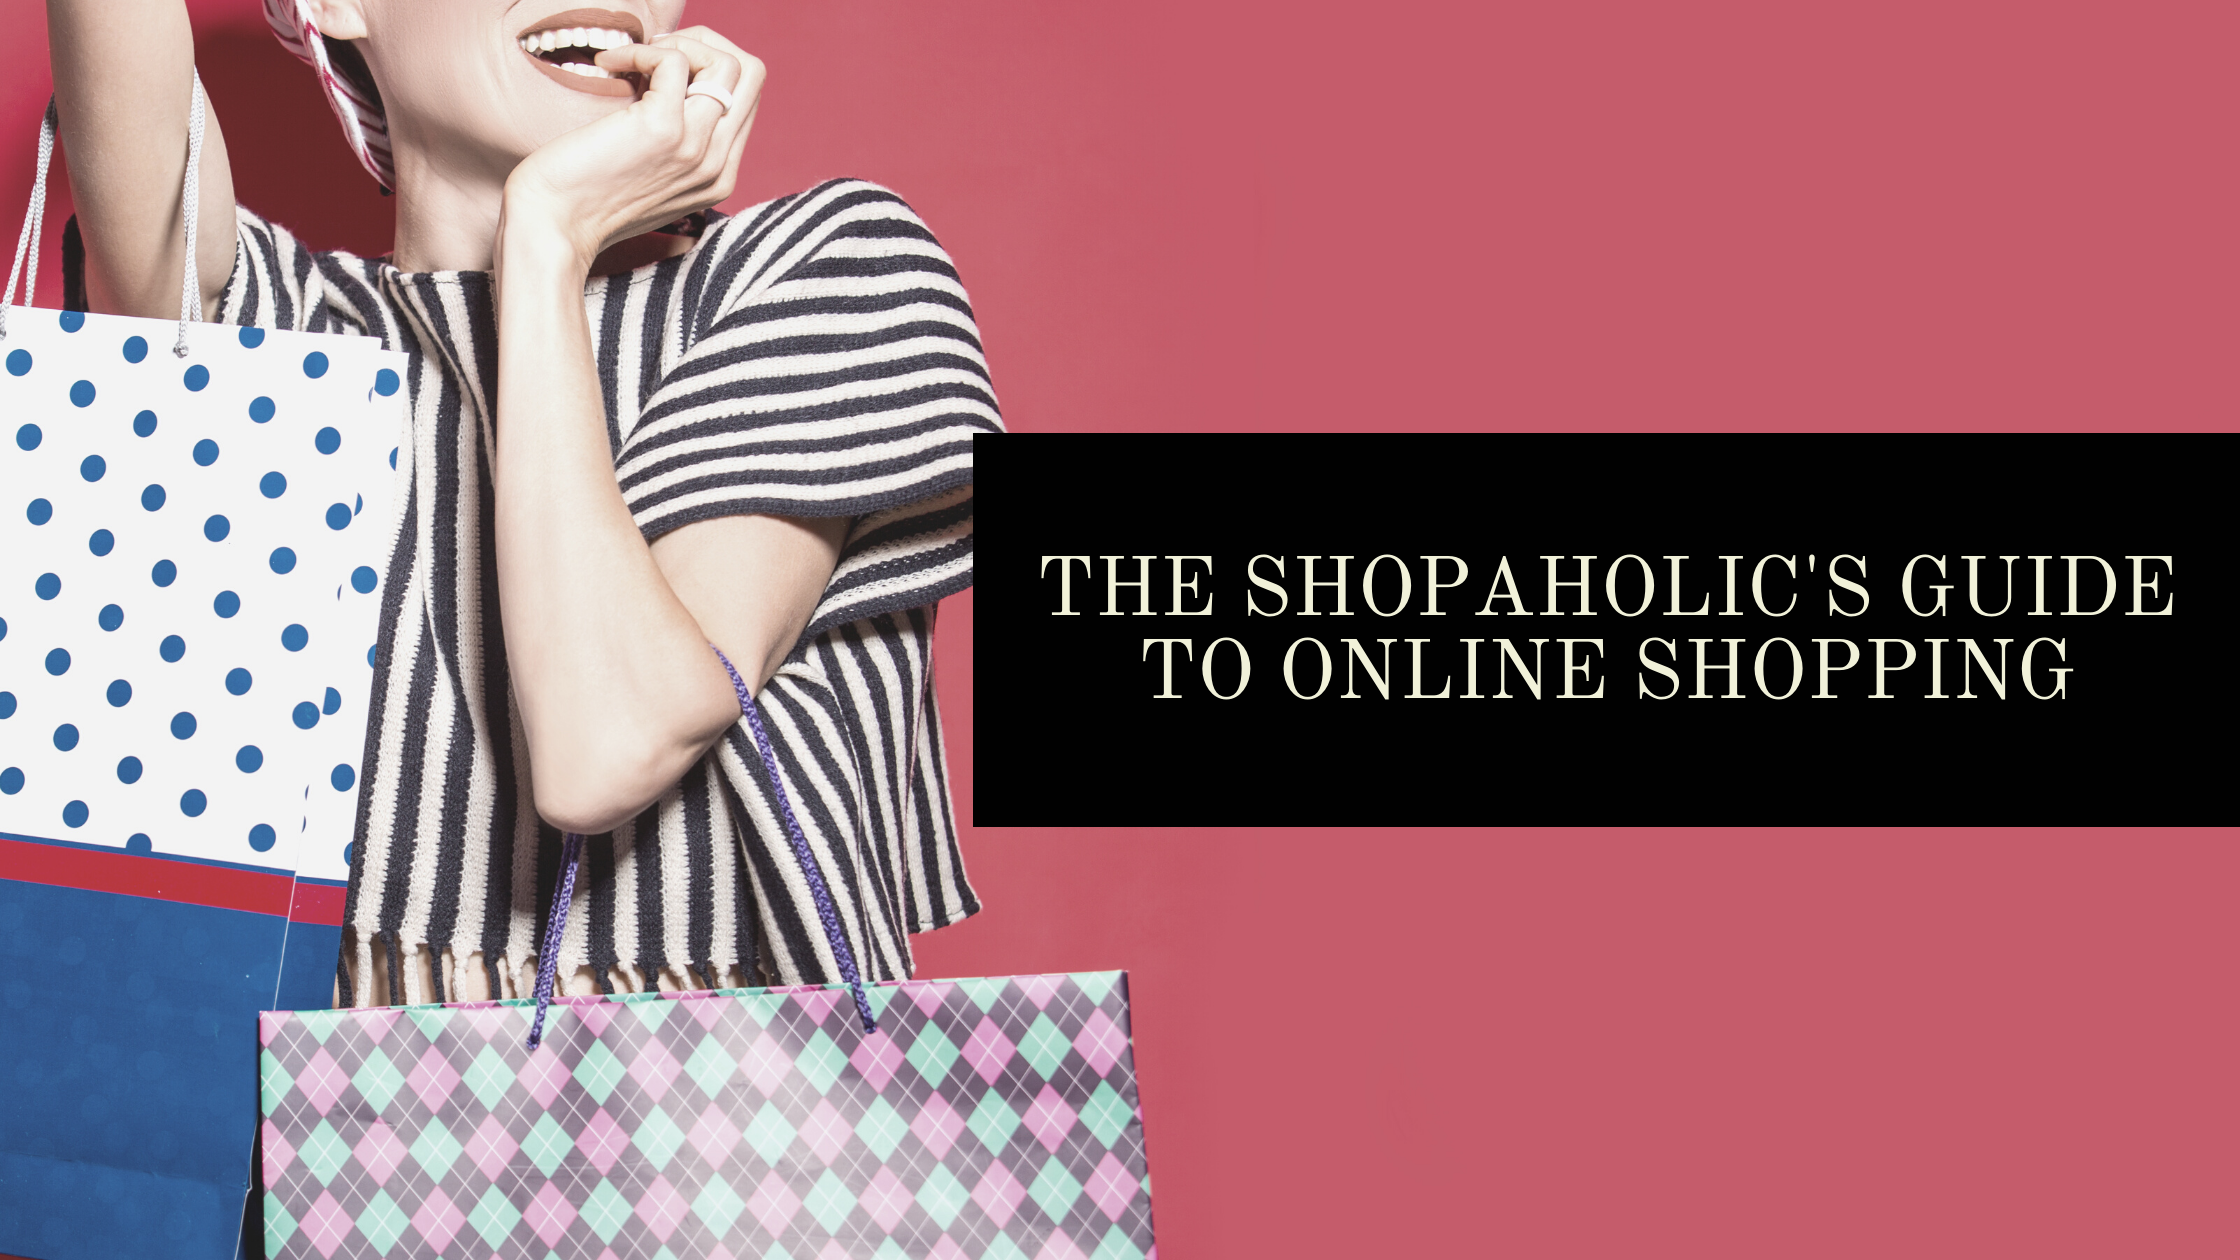 The Shopaholic's Guide to Online Shopping